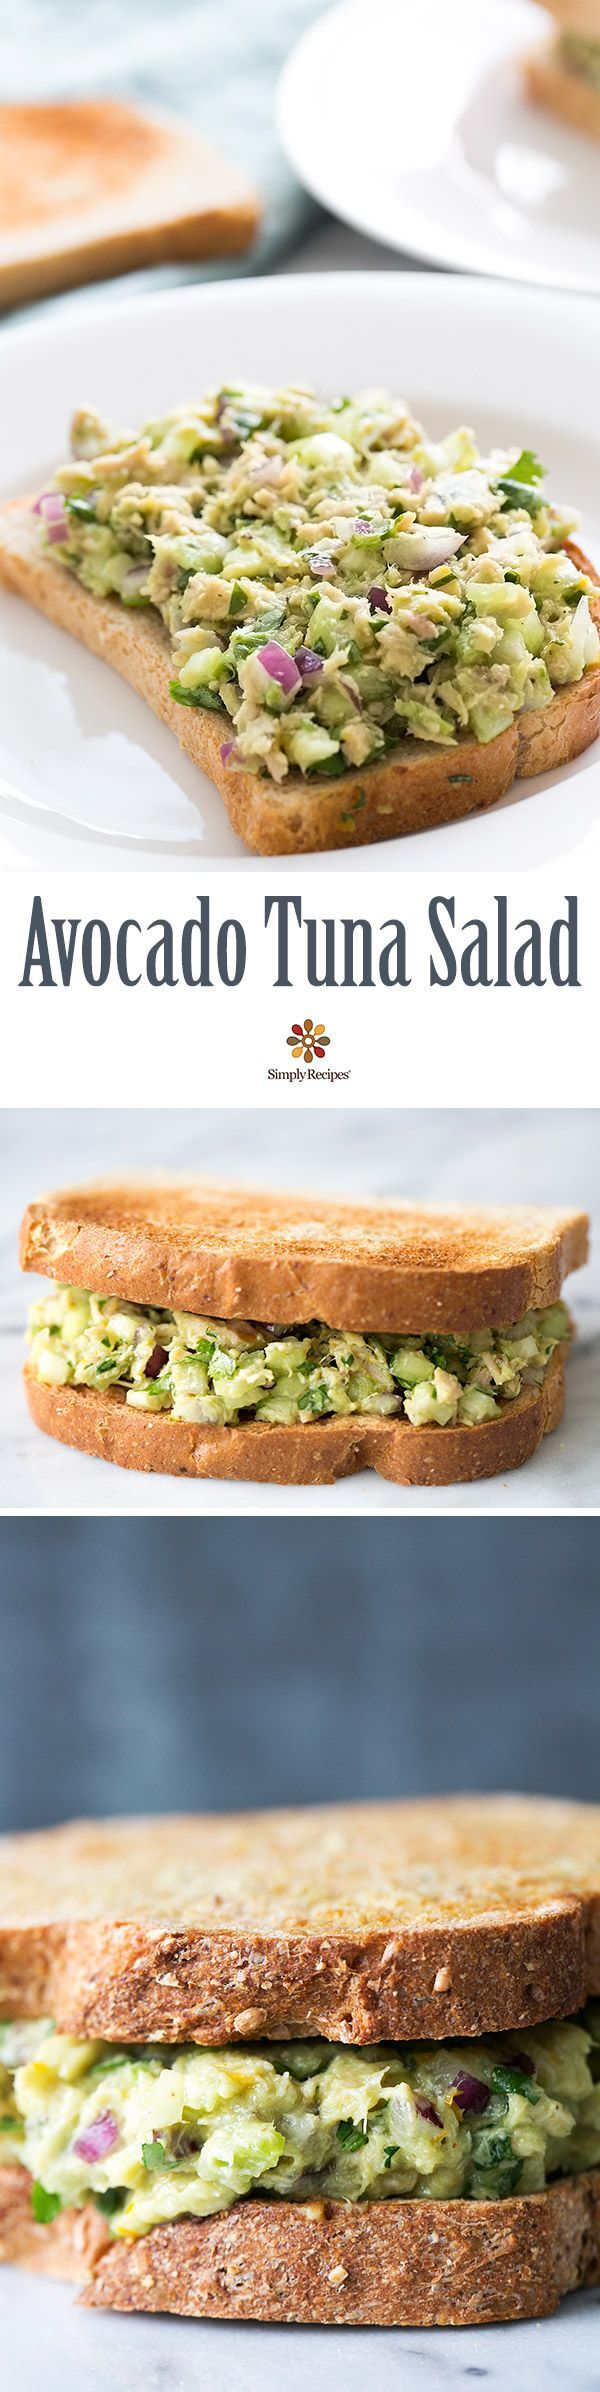 Avocado Tuna Salad | Recipe    http://guidetocreatingspaproducts.blogspot.com/